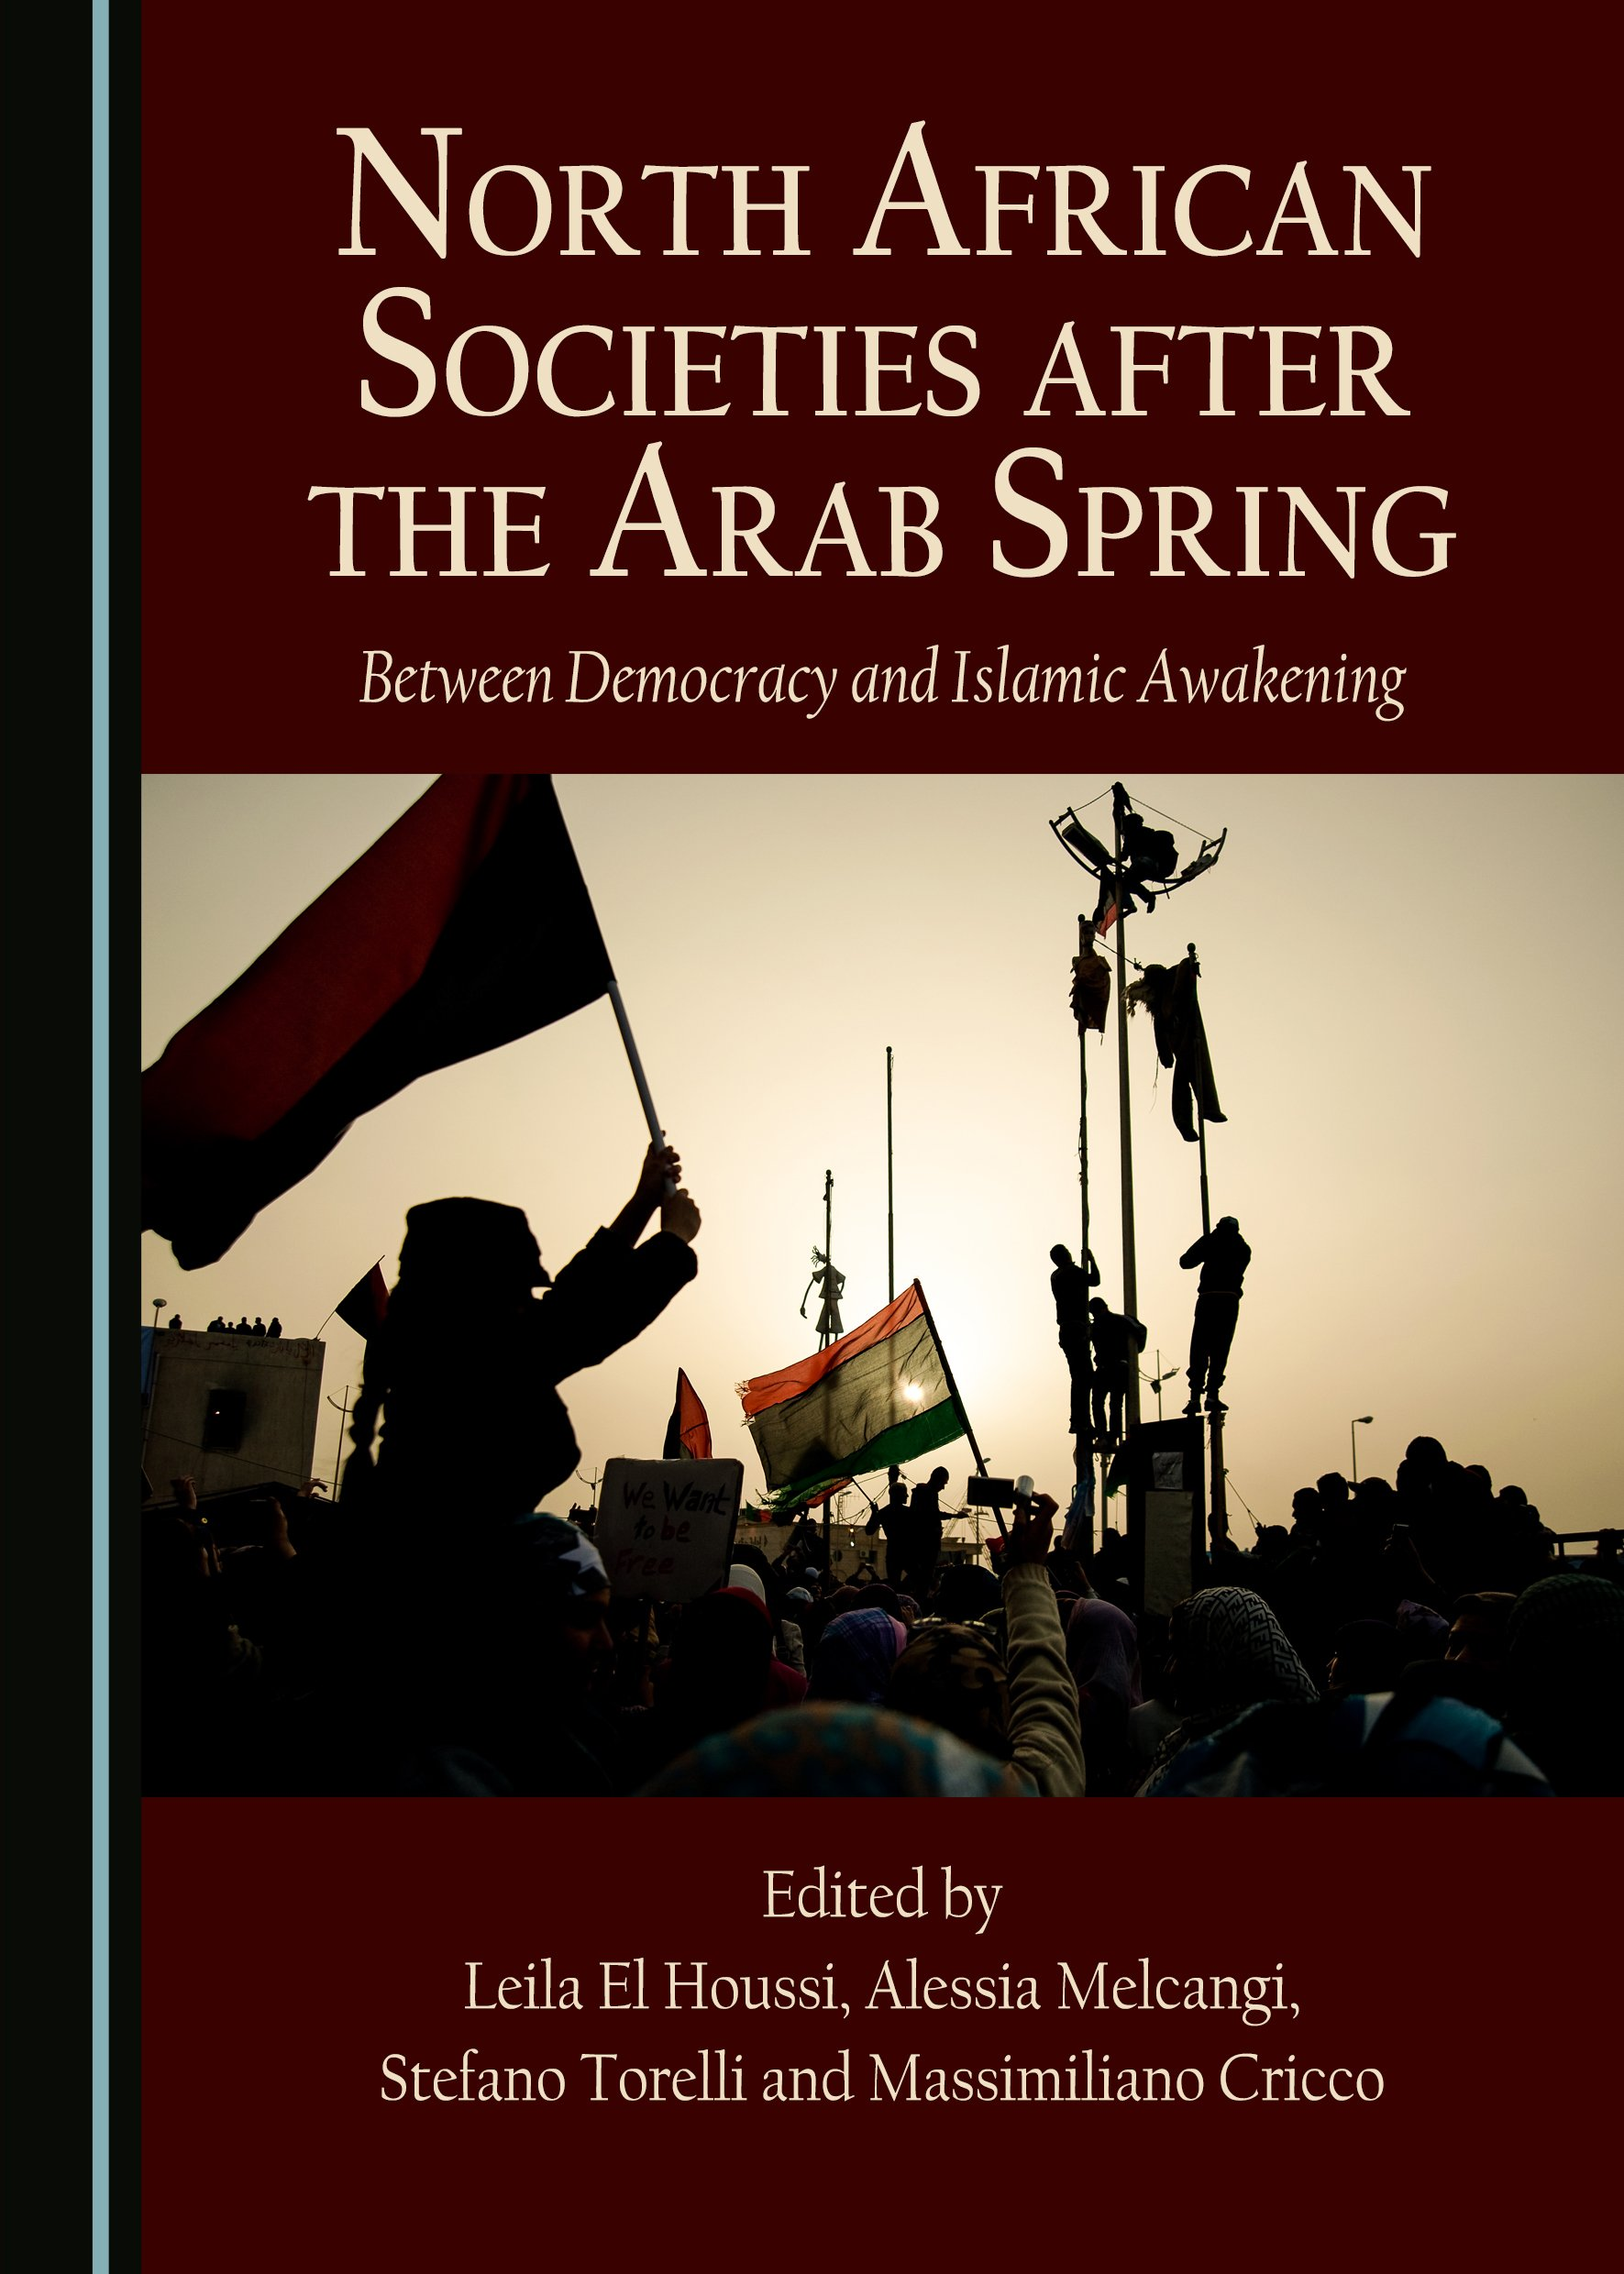 North African Societies after the Arab Spring: Between Democracy and Islamic Awakening